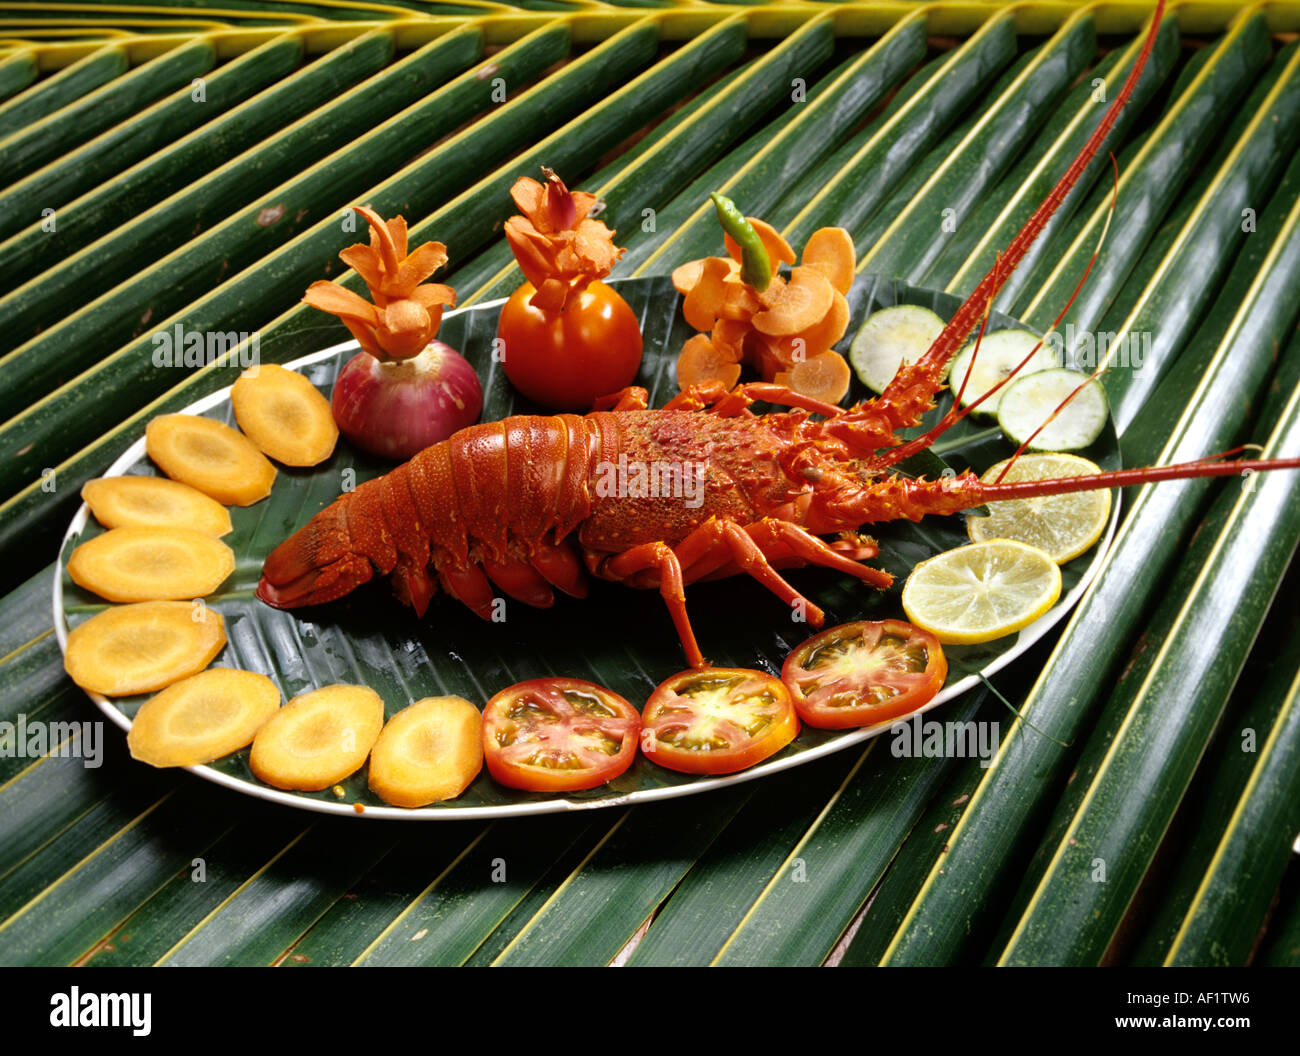 Lobster kerala cuisine stock photo royalty free image for Cuisine kerala